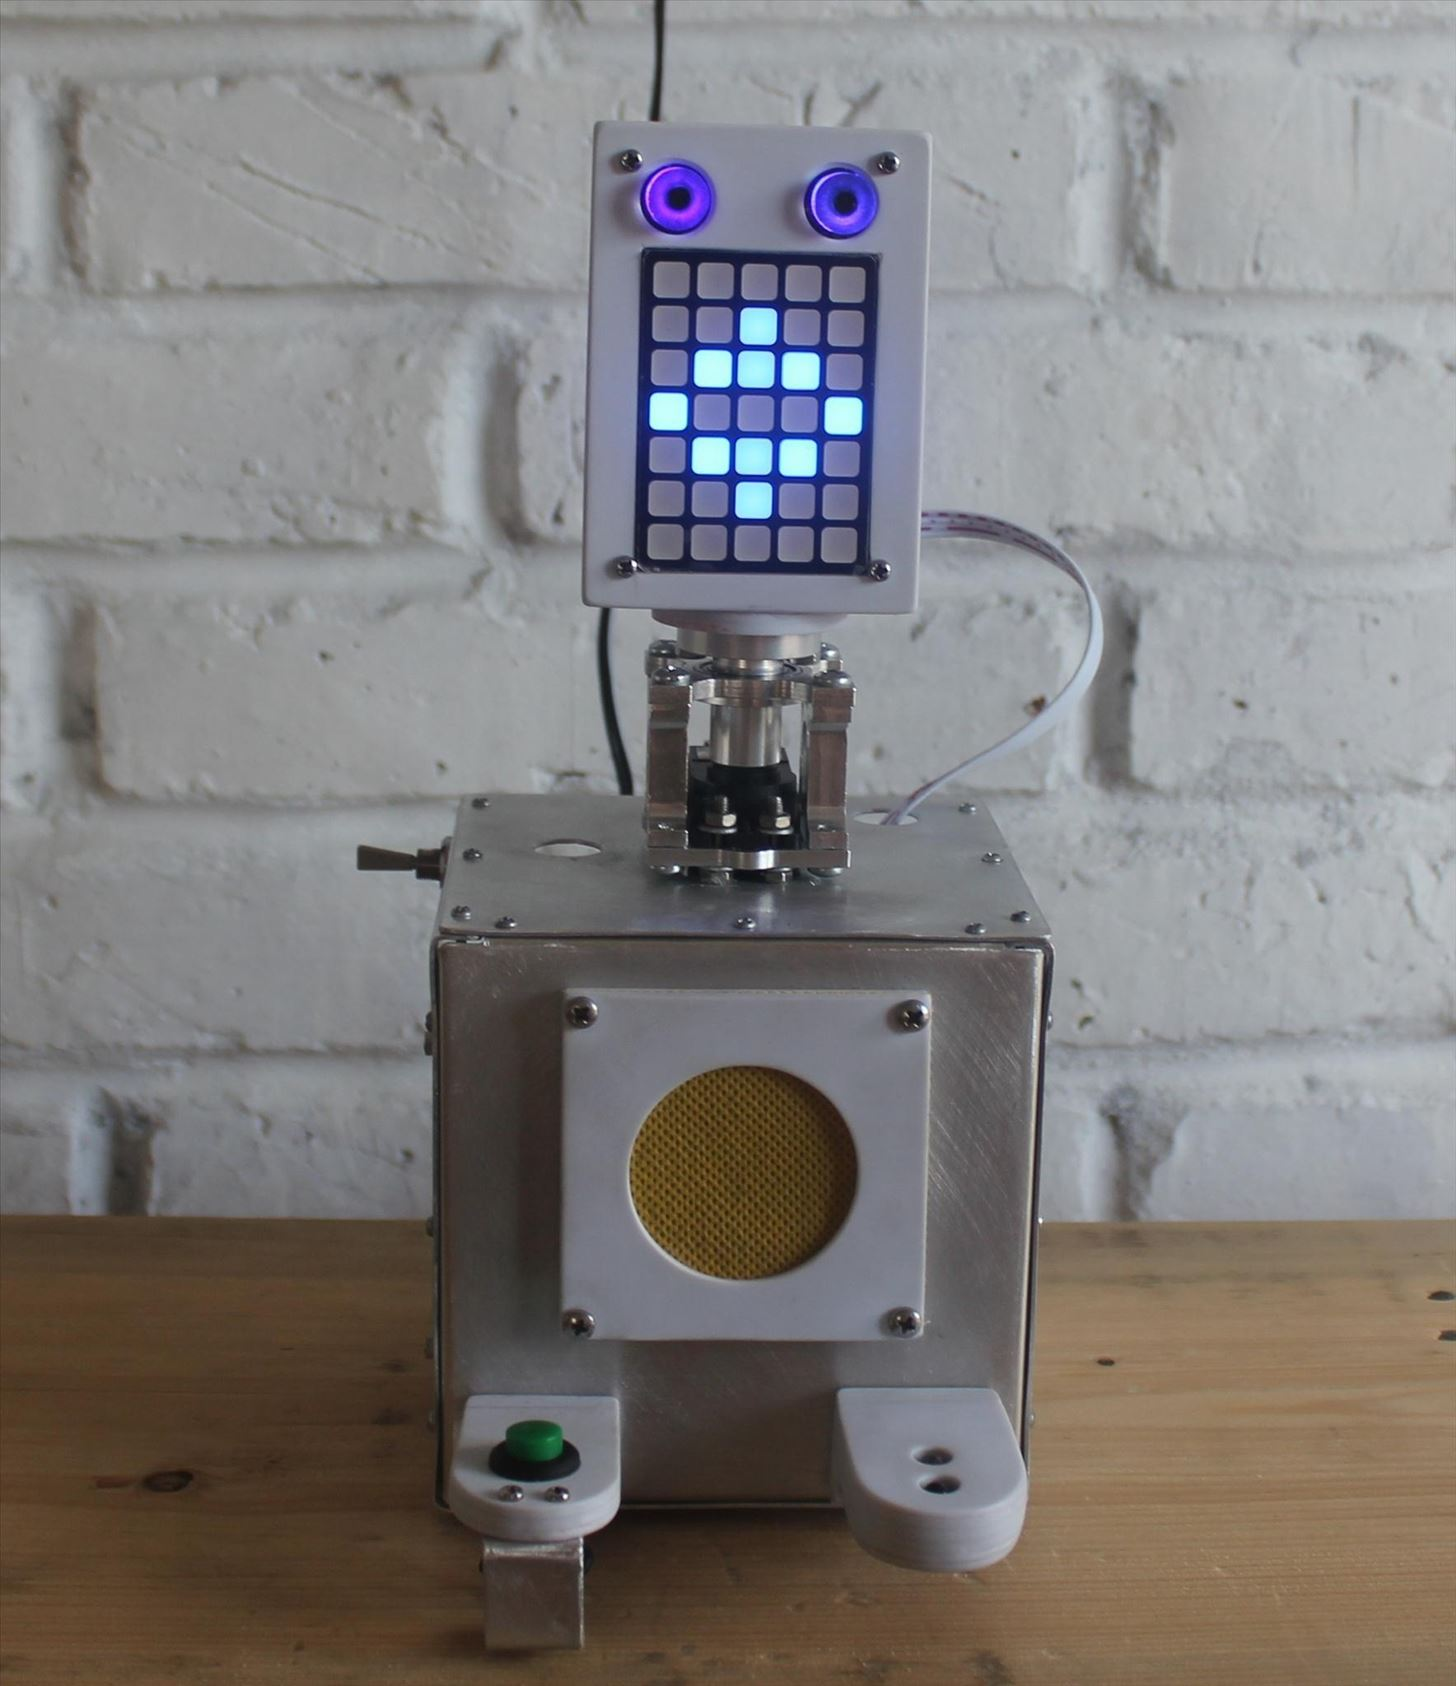 RoboDoc: A Kid-Friendly DIY Robot That Makes Doctor Visits a Little Less Scary